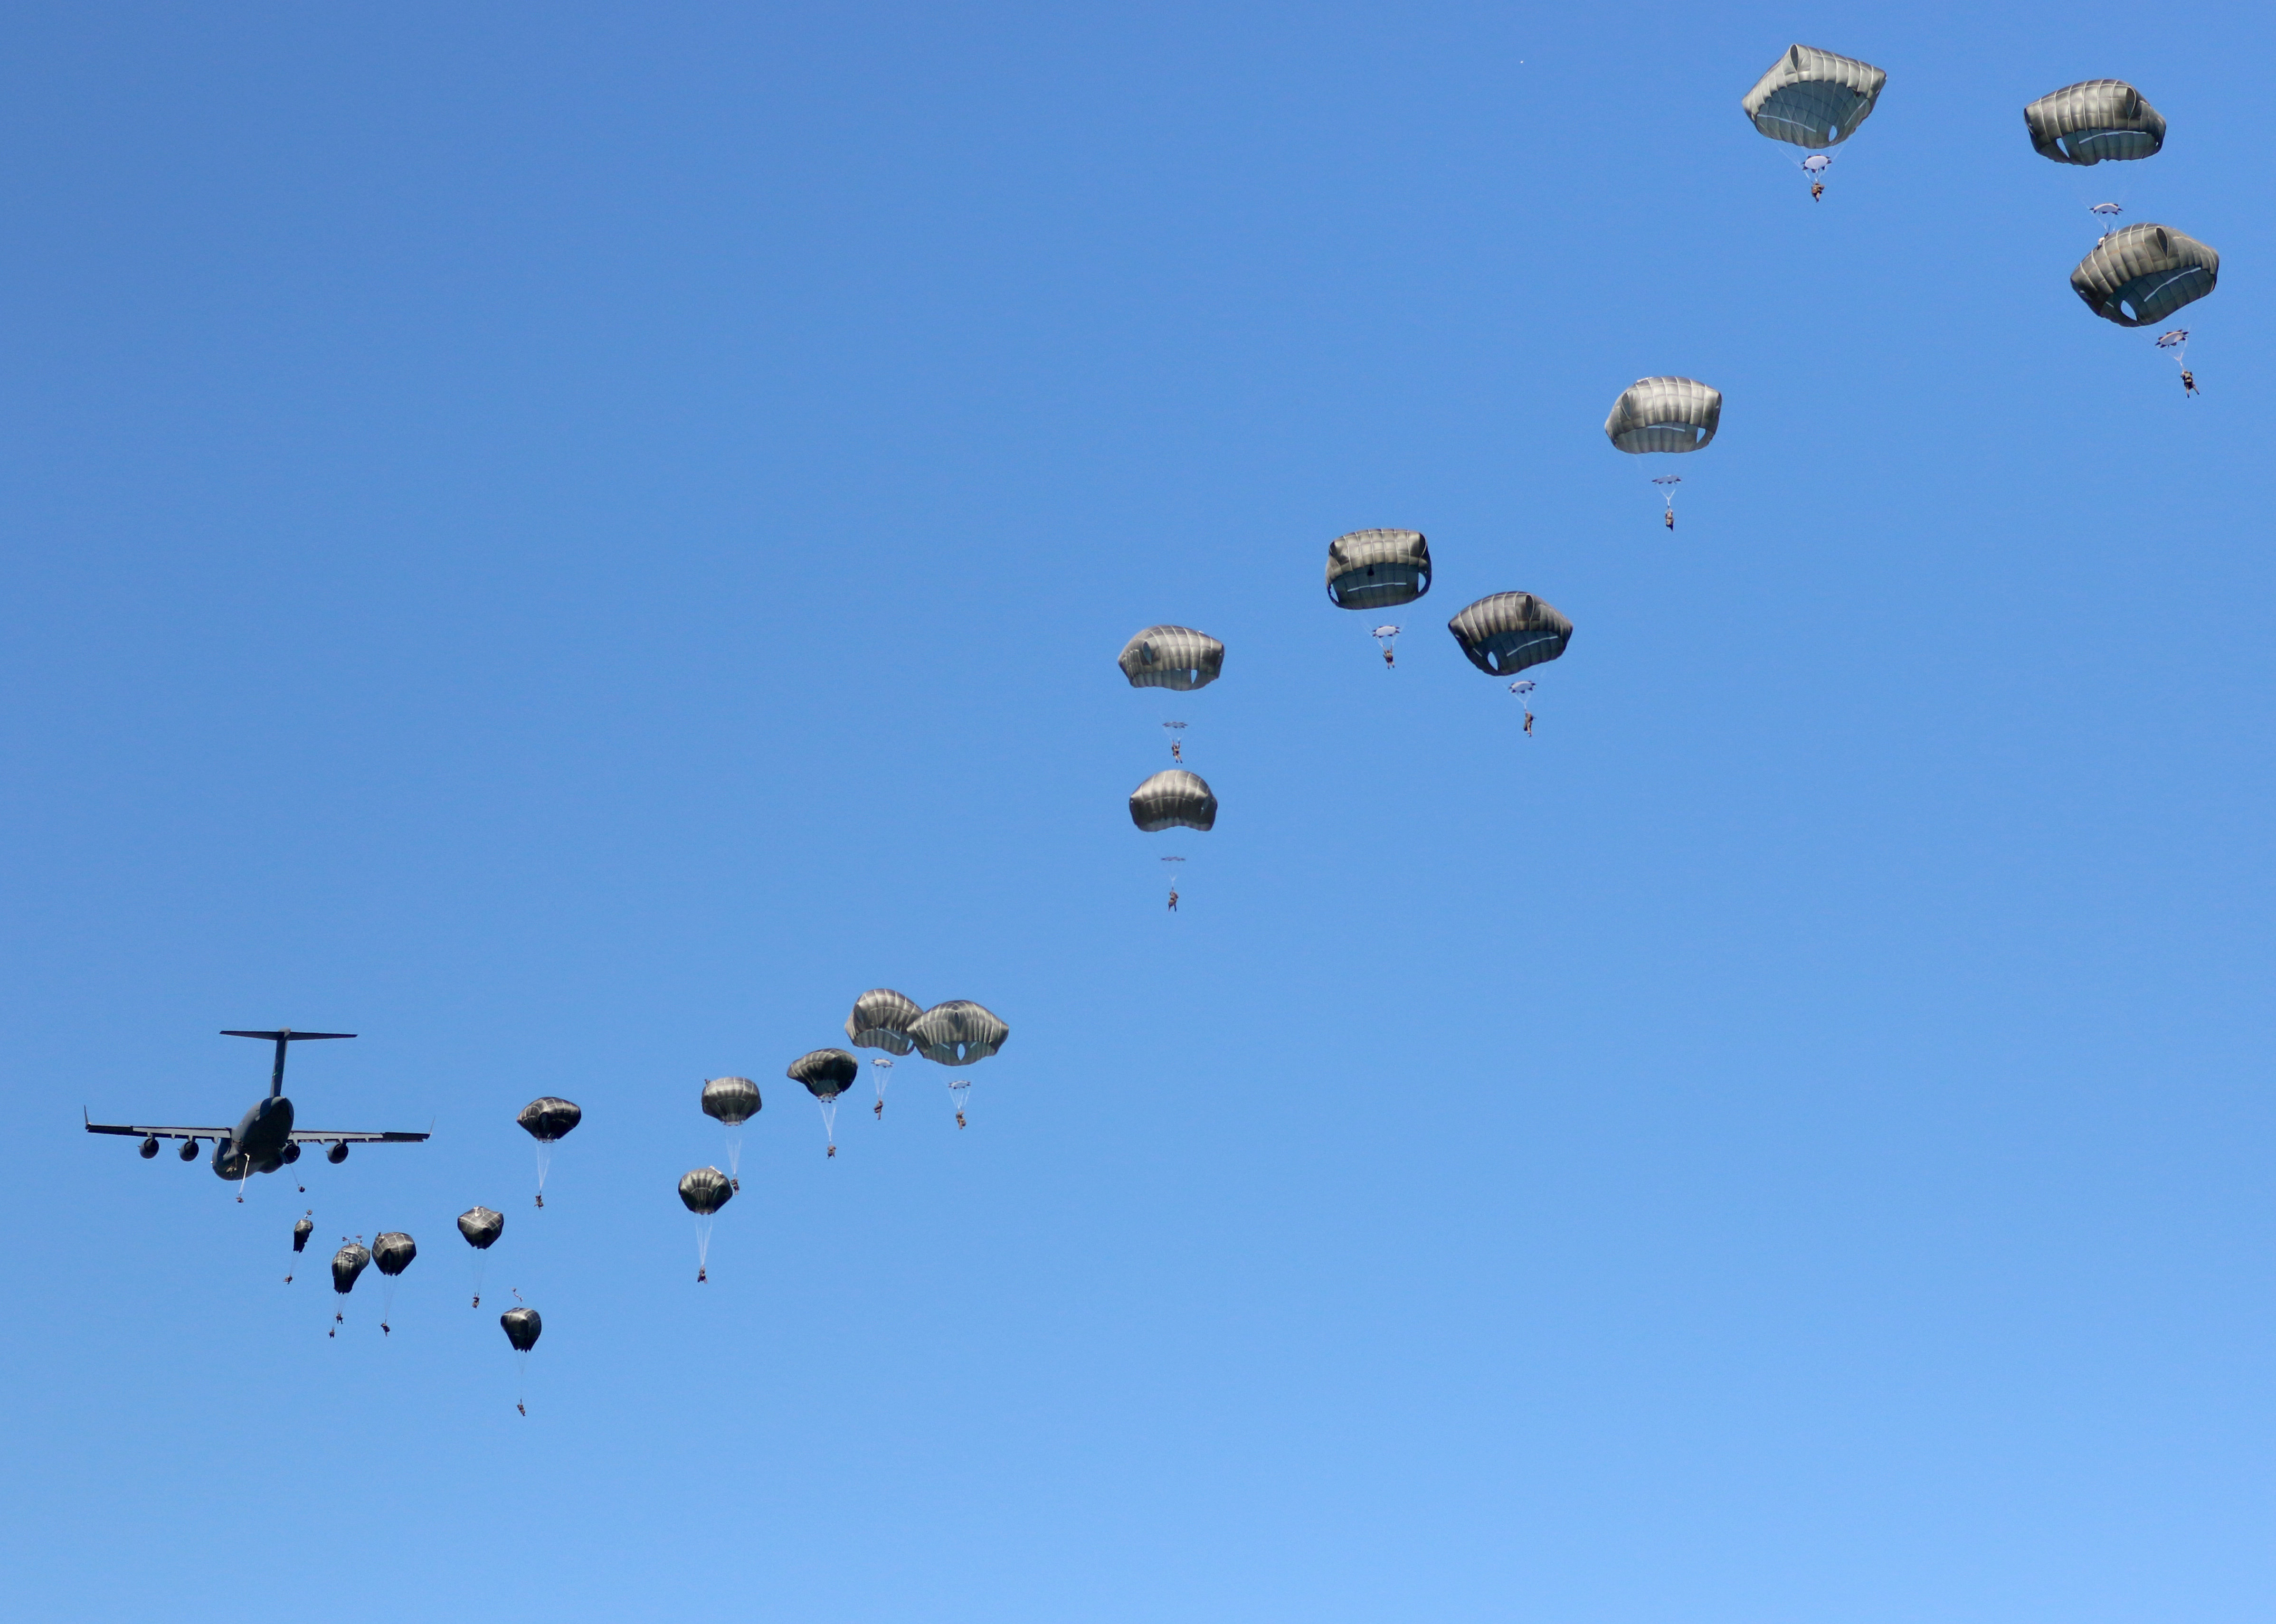 Paratroopers assigned to 1st Brigade Combat Team, 82nd Airborne Division fill the skies over a drop zone in Torun, Poland during Exercise Swift Response 16, June 7